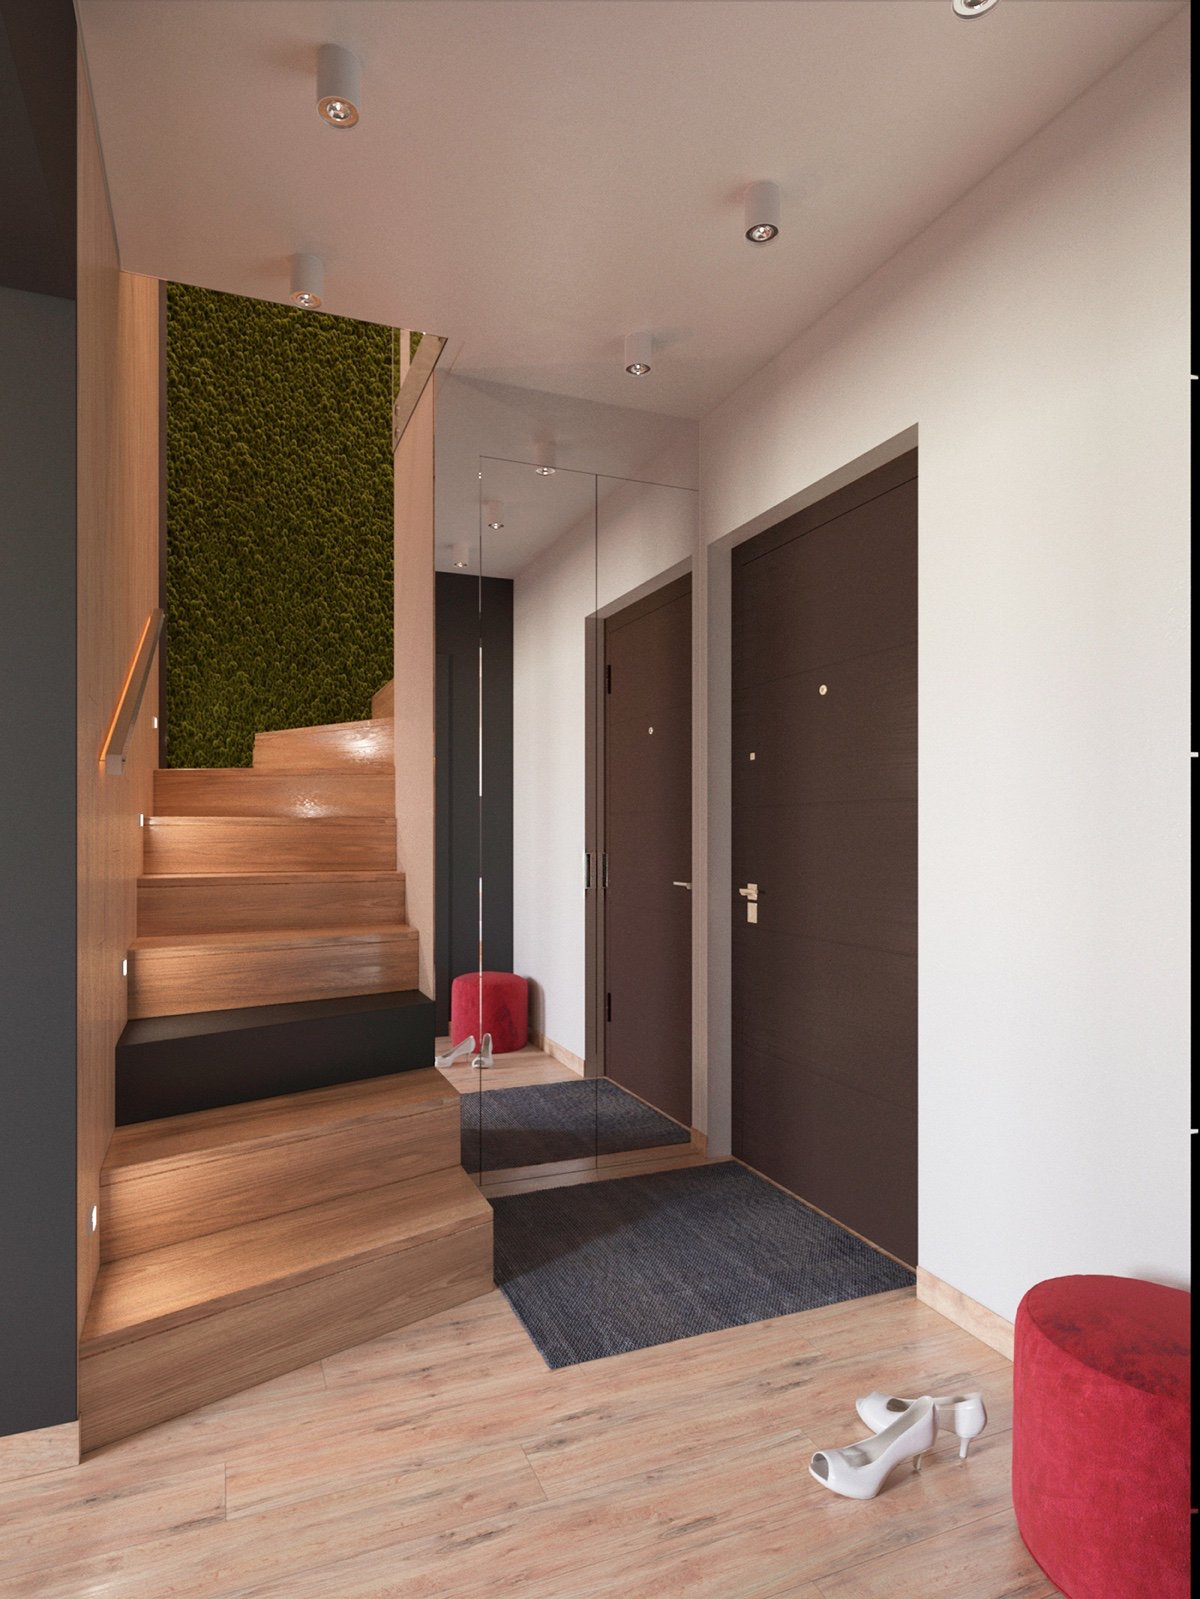 Plant Wall - 3 modern apartment interiors that masterfully demonstrate how to use red as an artistic accent